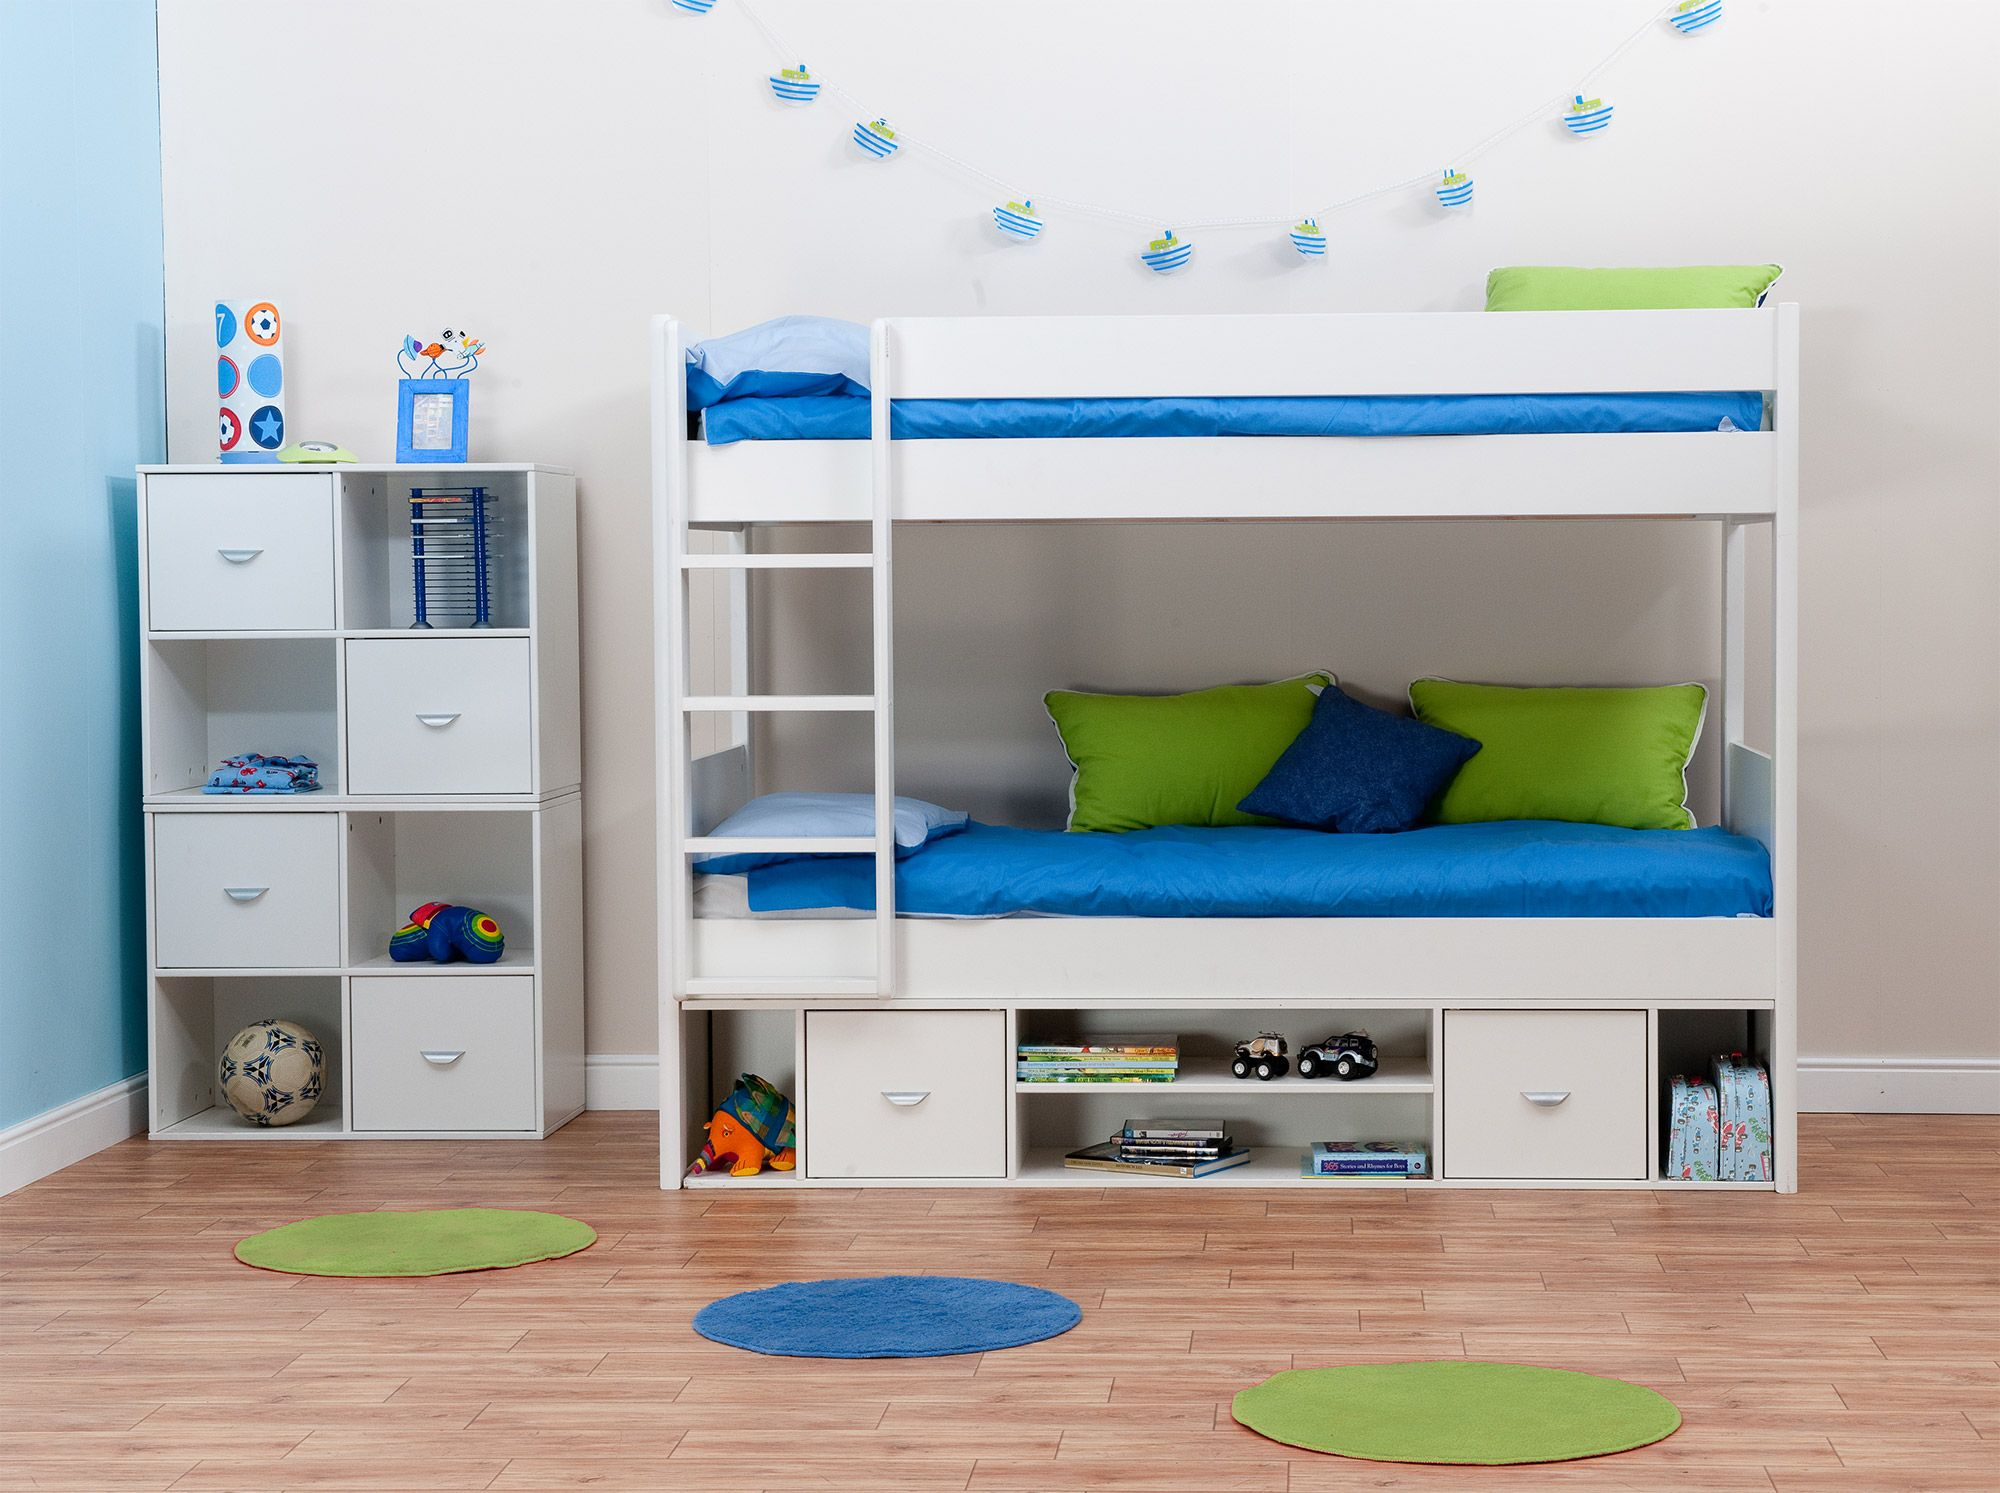 Space Saving Beds For Small Rooms 30 Space Saving Beds For Small Rooms  Bunk Bed Small Space